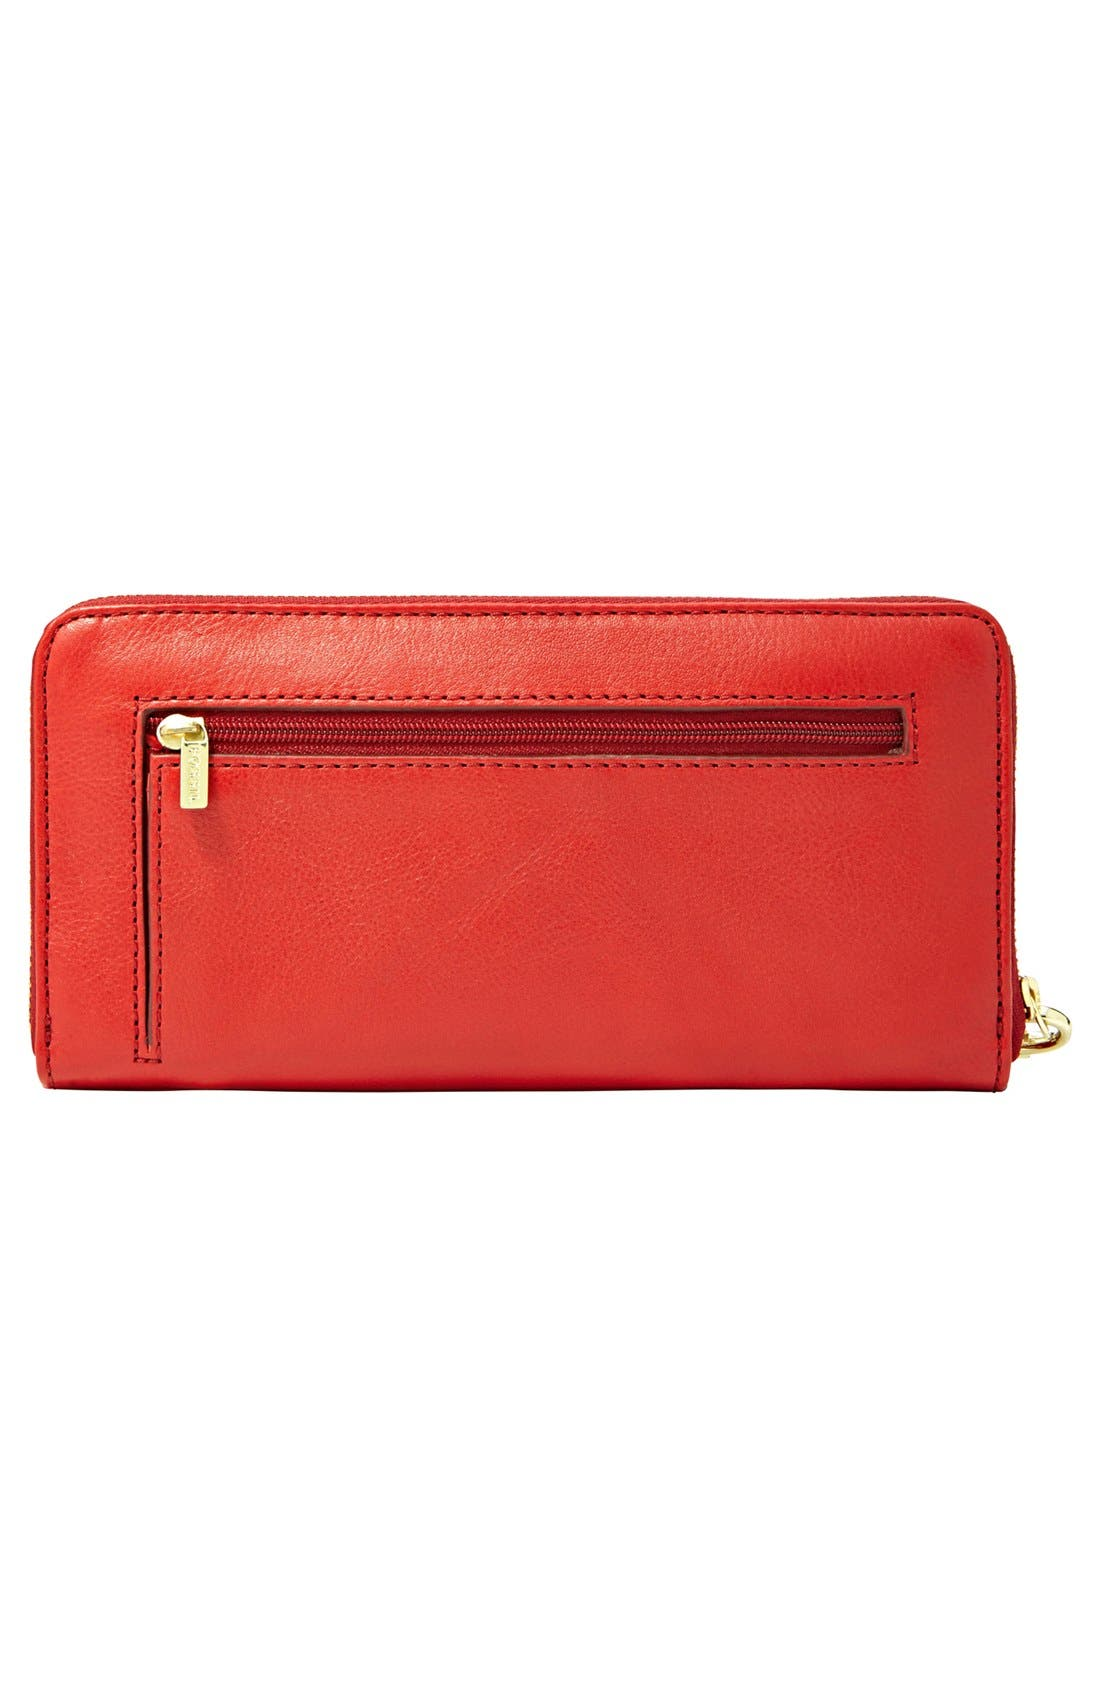 Alternate Image 2  - Fossil 'Sydney' Colorblock Clutch Wallet